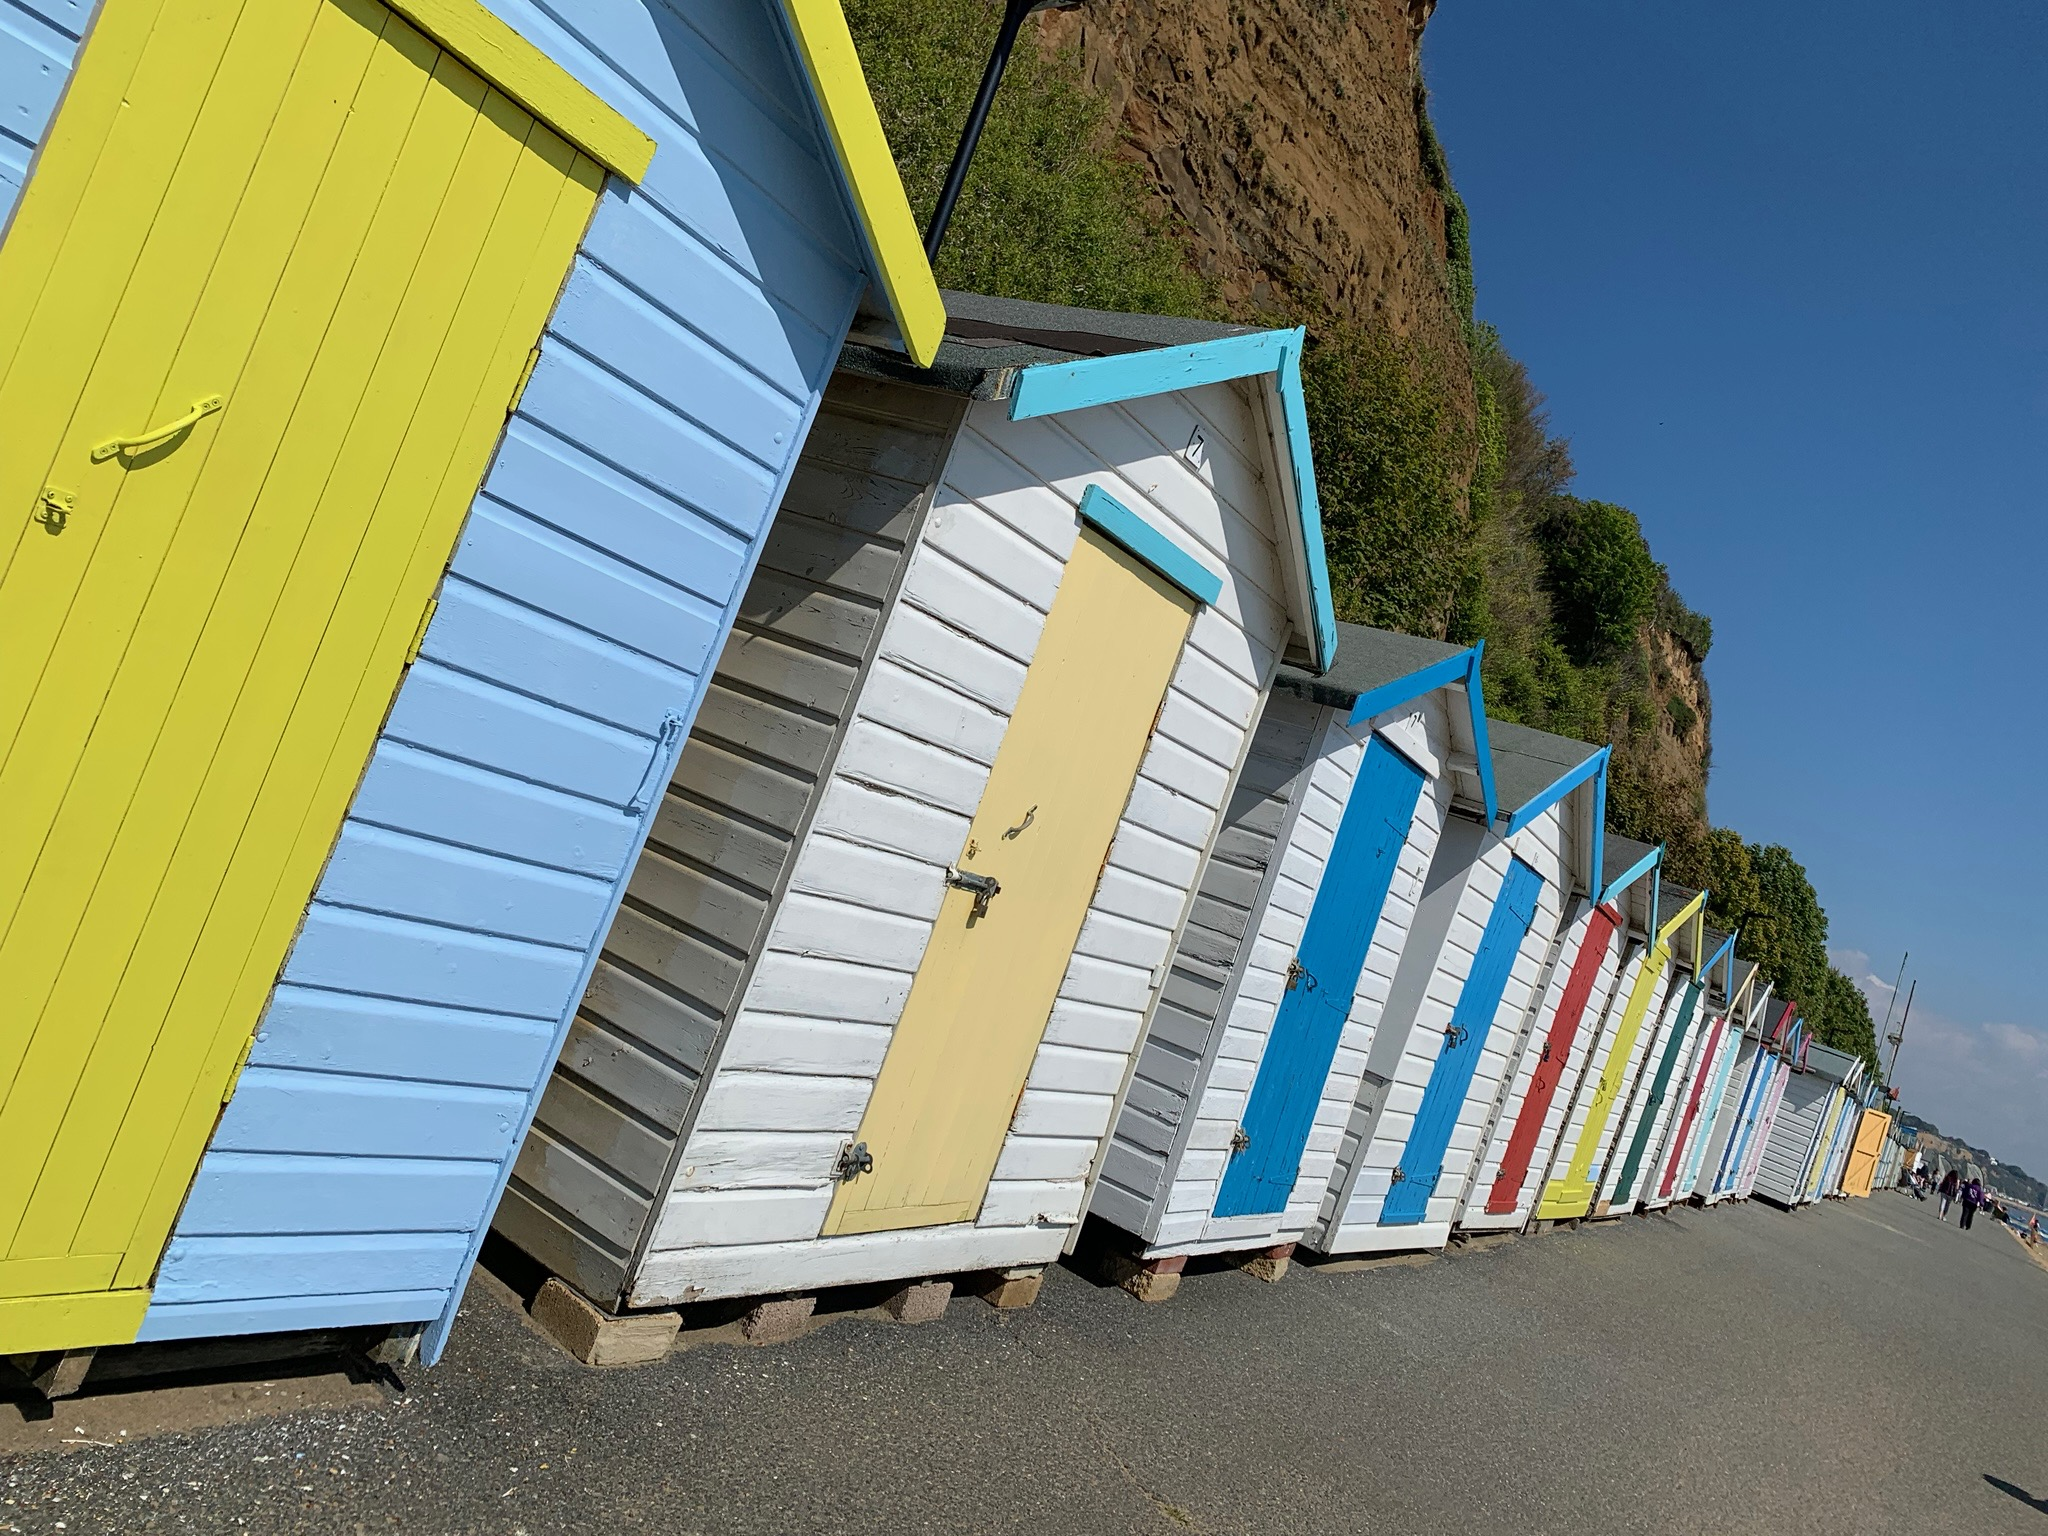 Beach huts Shanklin.jpg